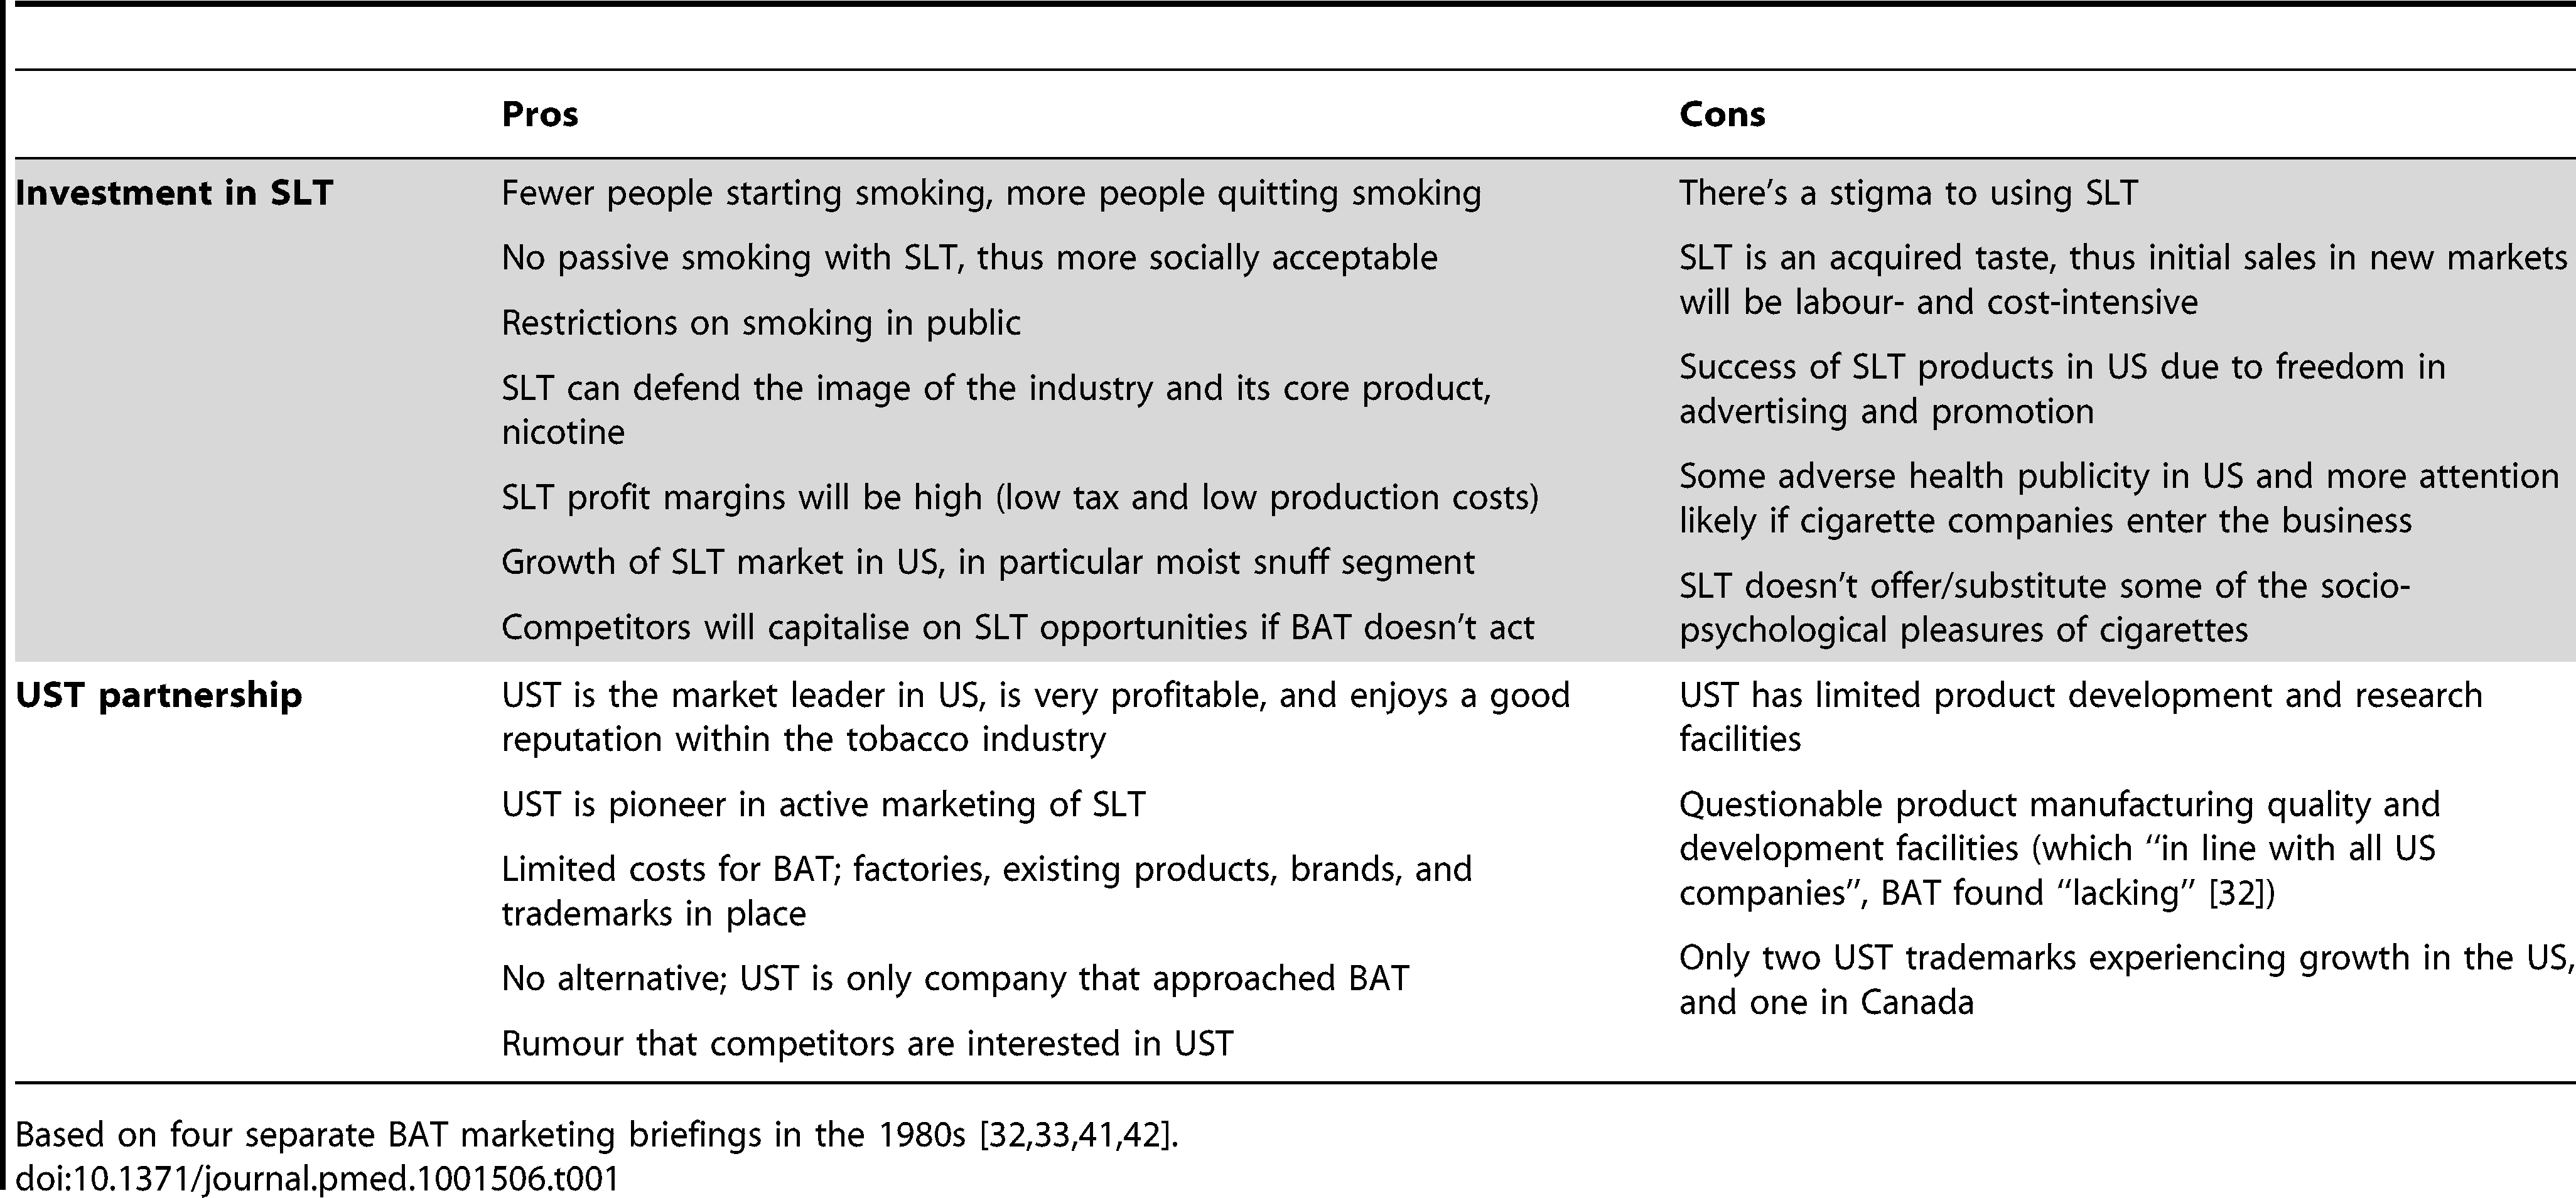 Themes of BAT's rationales for and against investing in SLT, and partnering with UST, based on 1980s BAT documents.